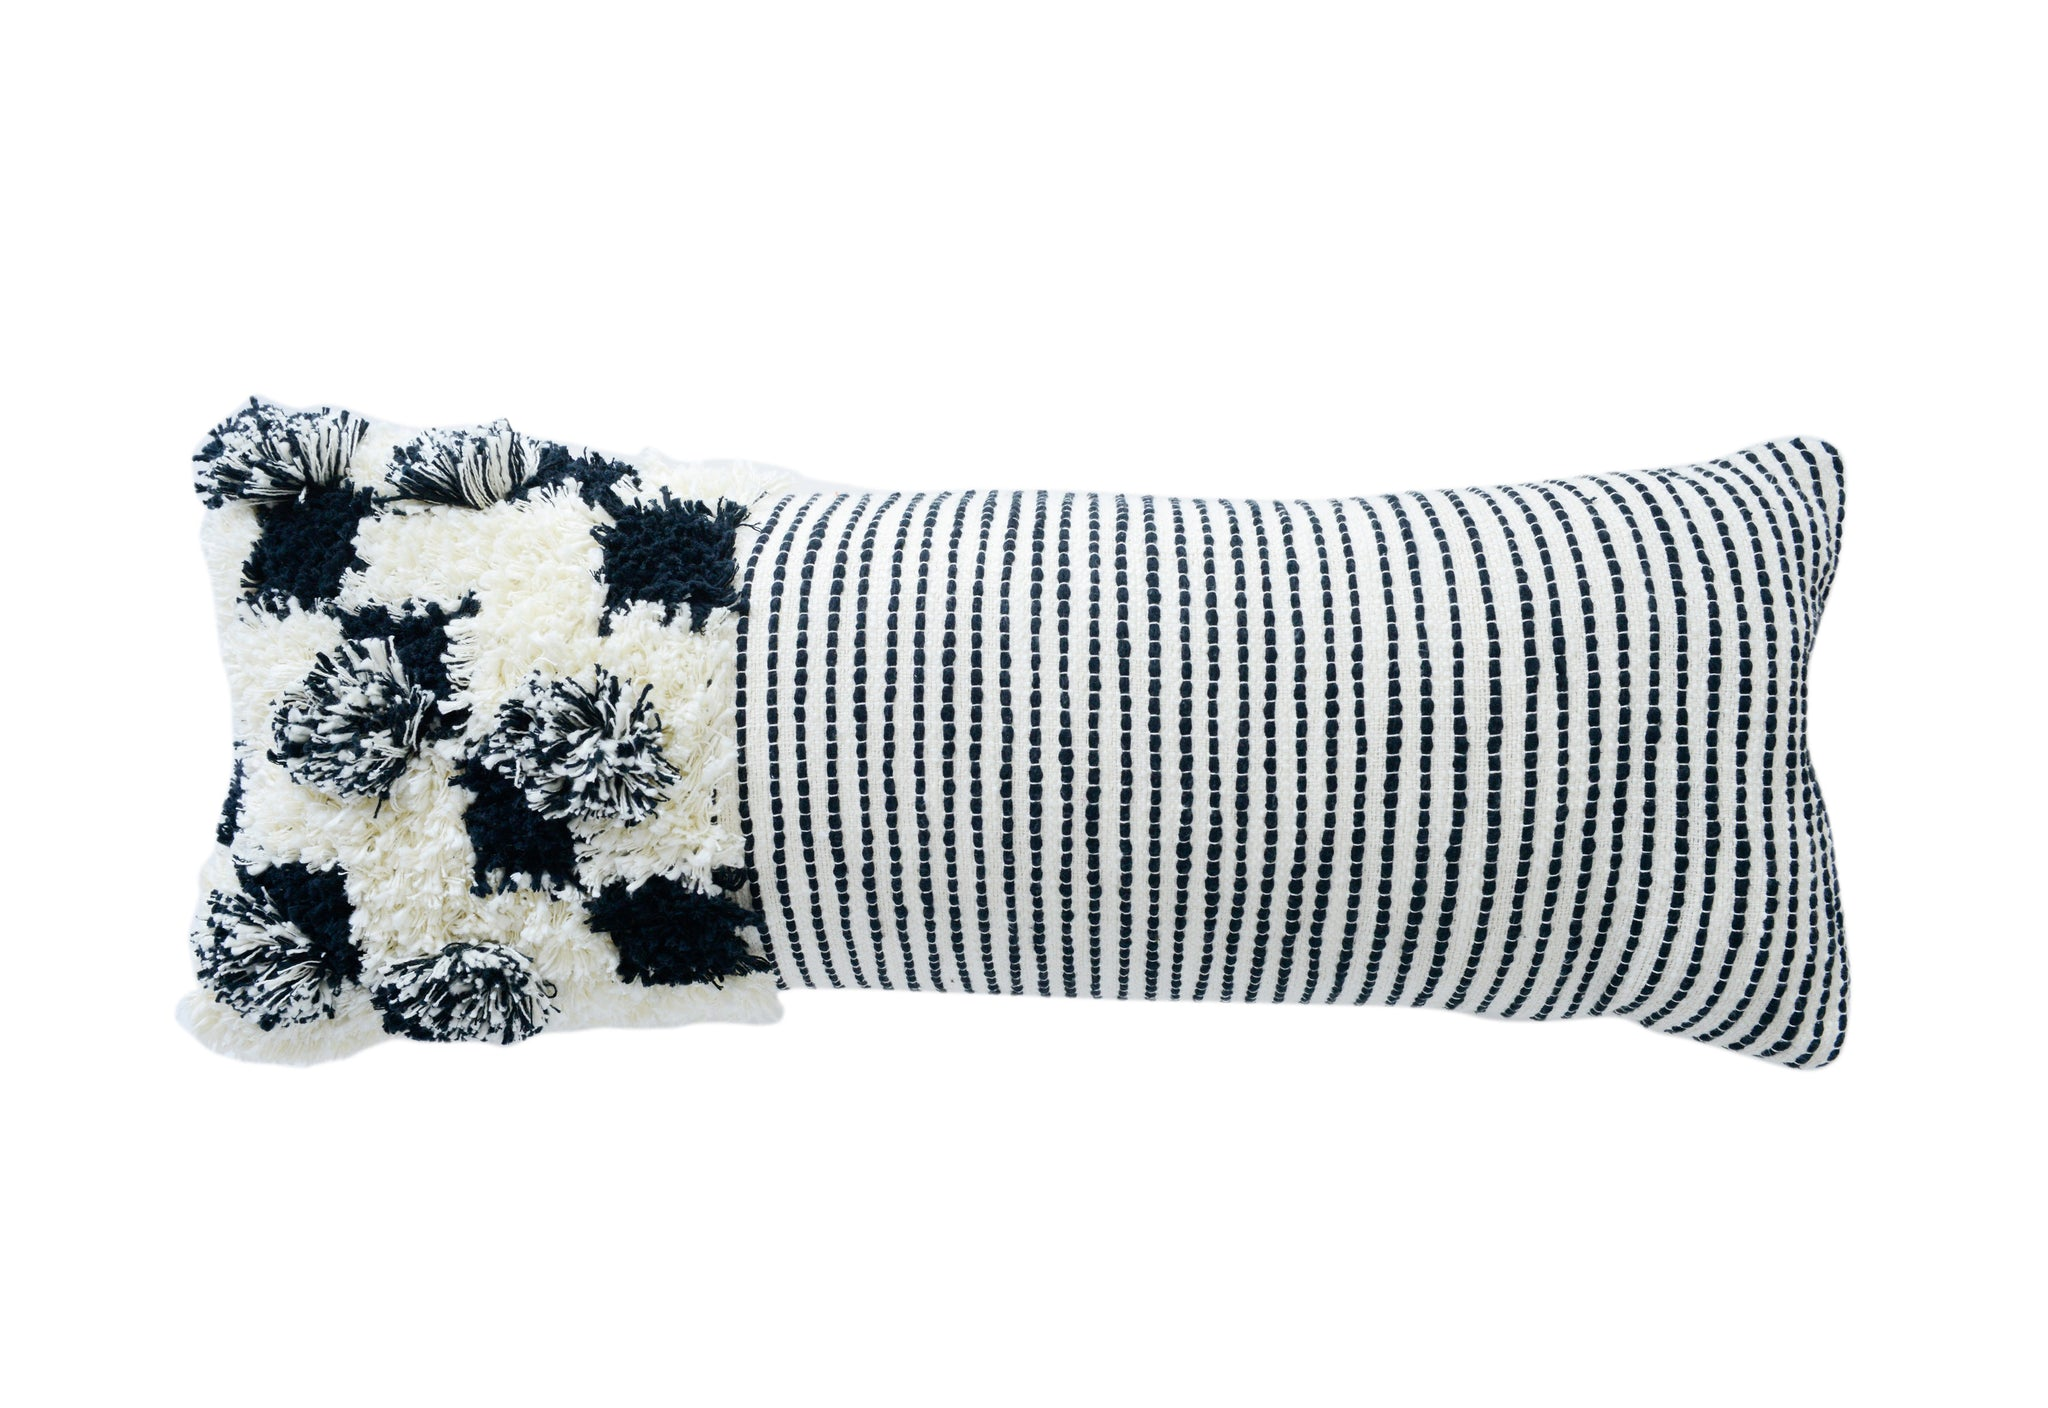 Embroidered & Appliqued Black & White Cotton Lumbar Pillow with Fringe